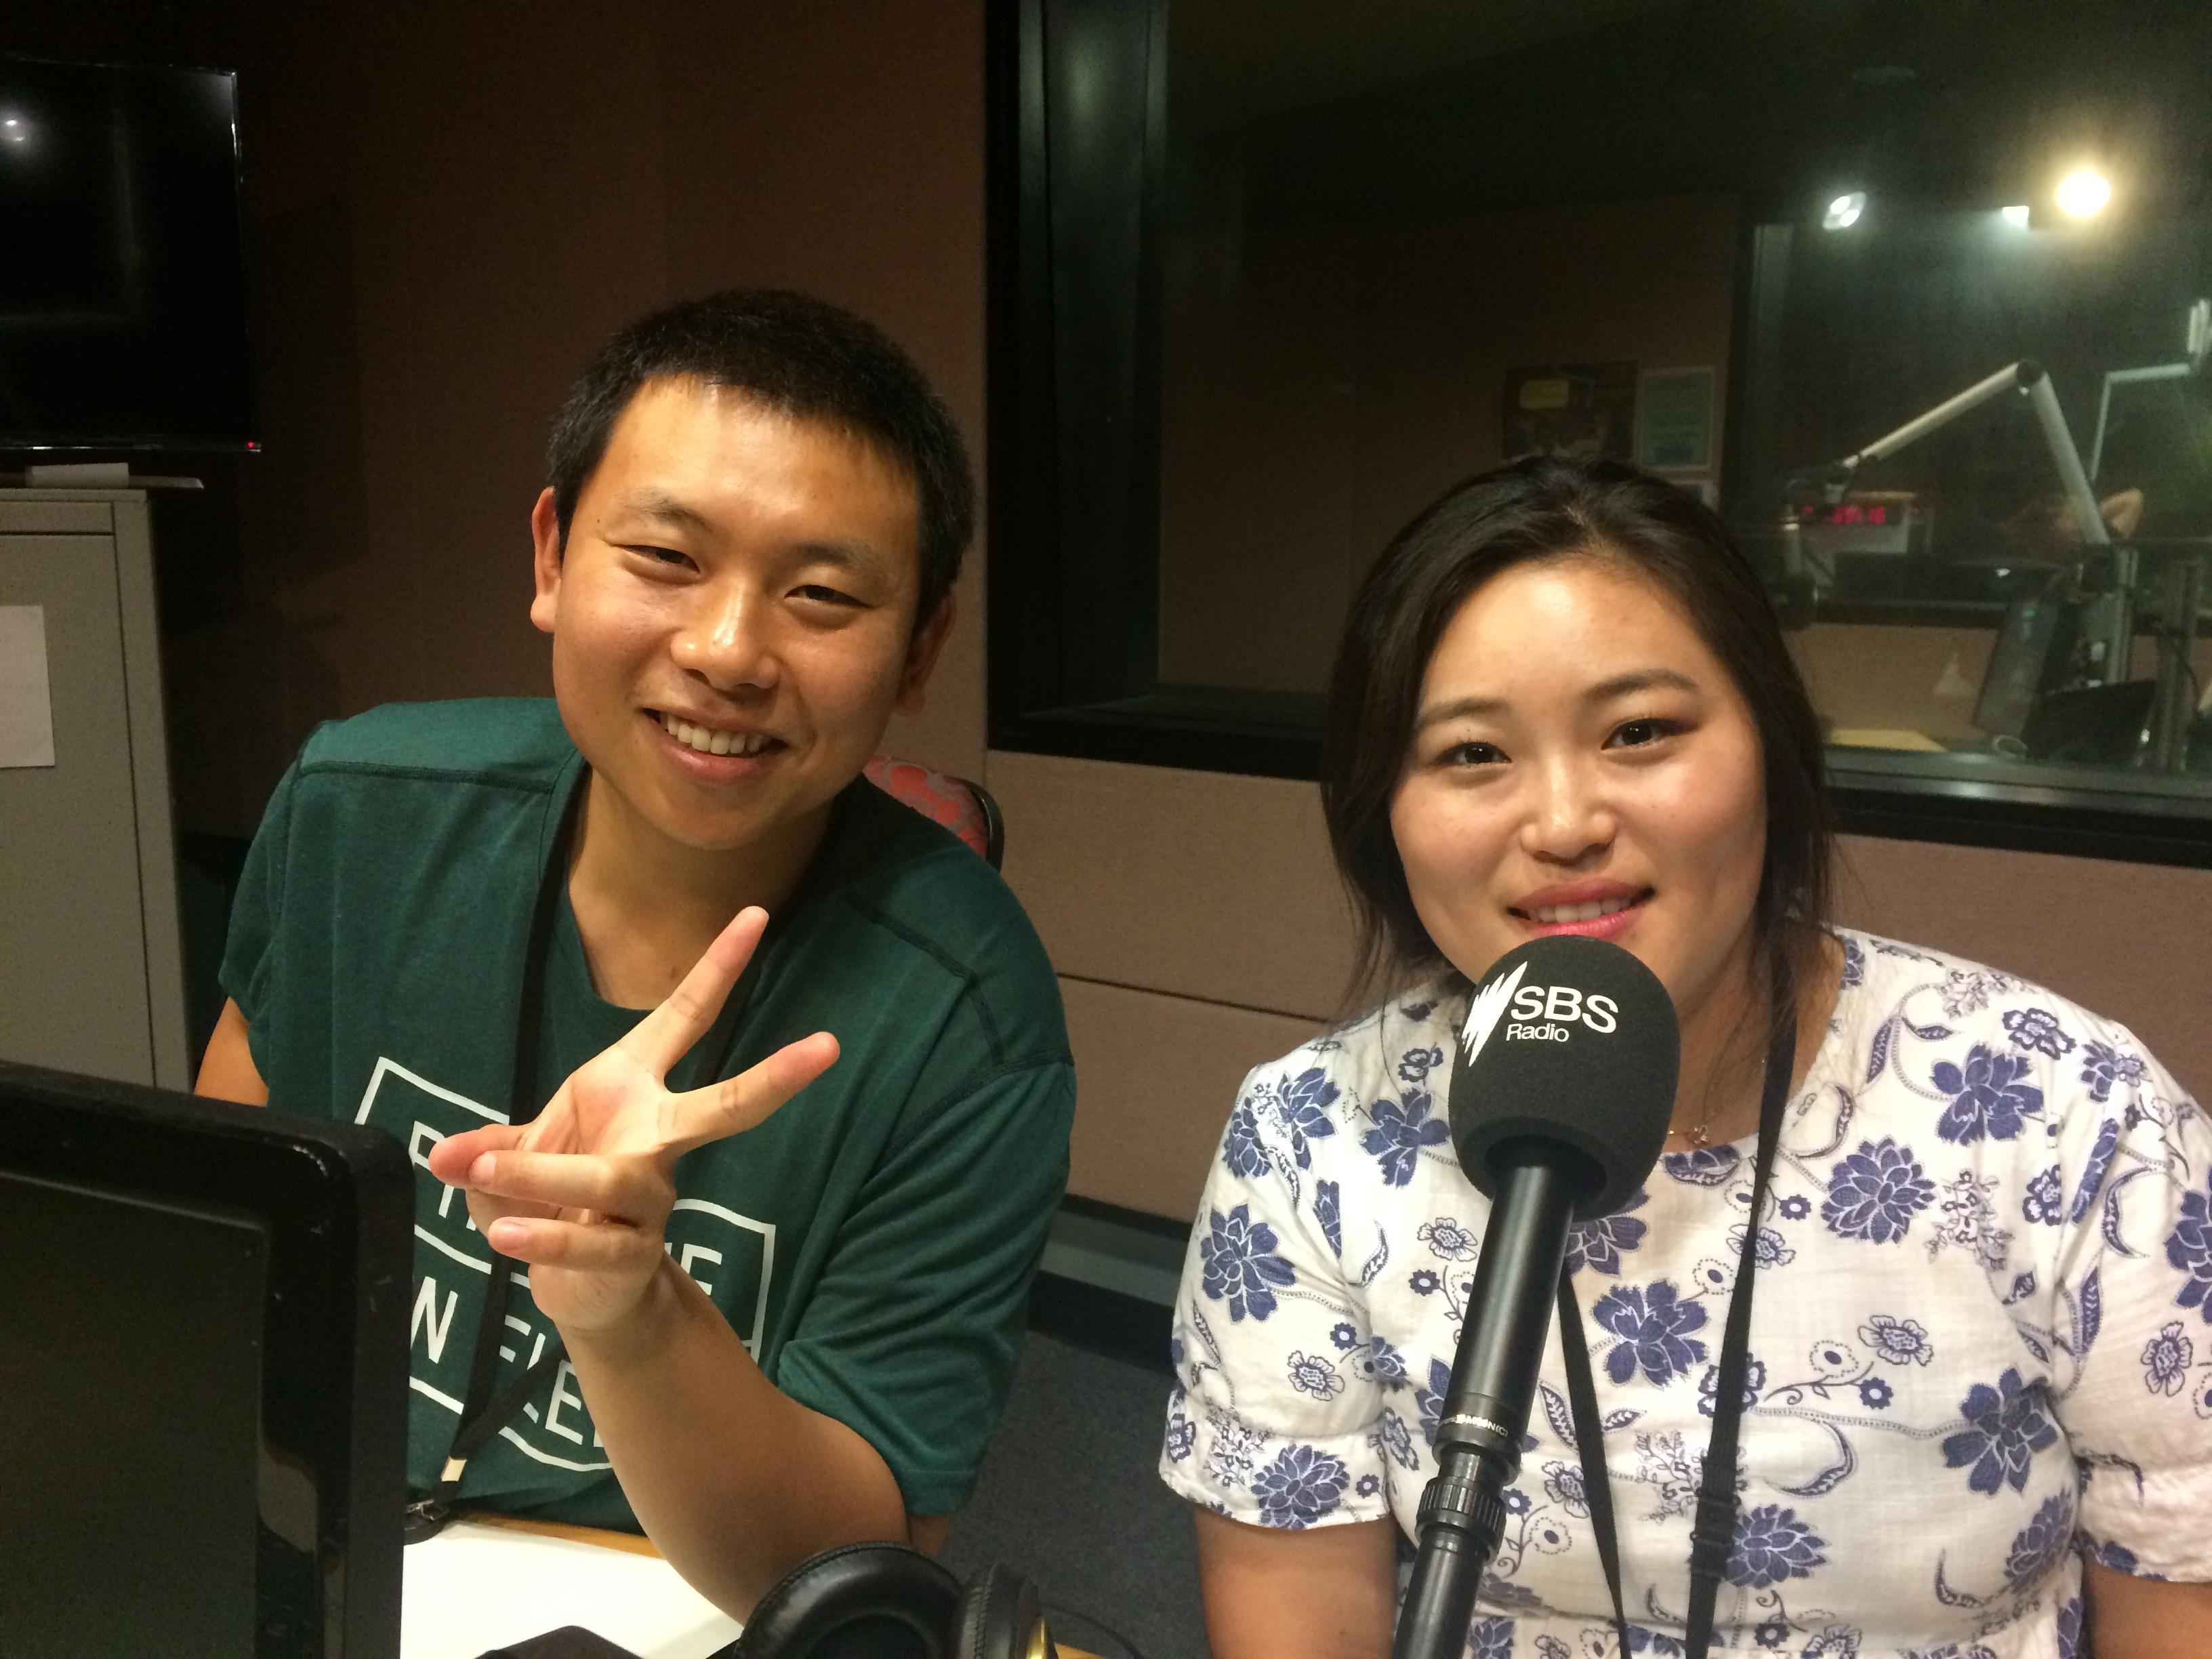 Lny interview lunar new year greeting to parents sbs your language lny interview lunar new year greeting to parents as we celebrate the 2017 lunar new year two working holiday visa holders send their new year messages to kristyandbryce Images